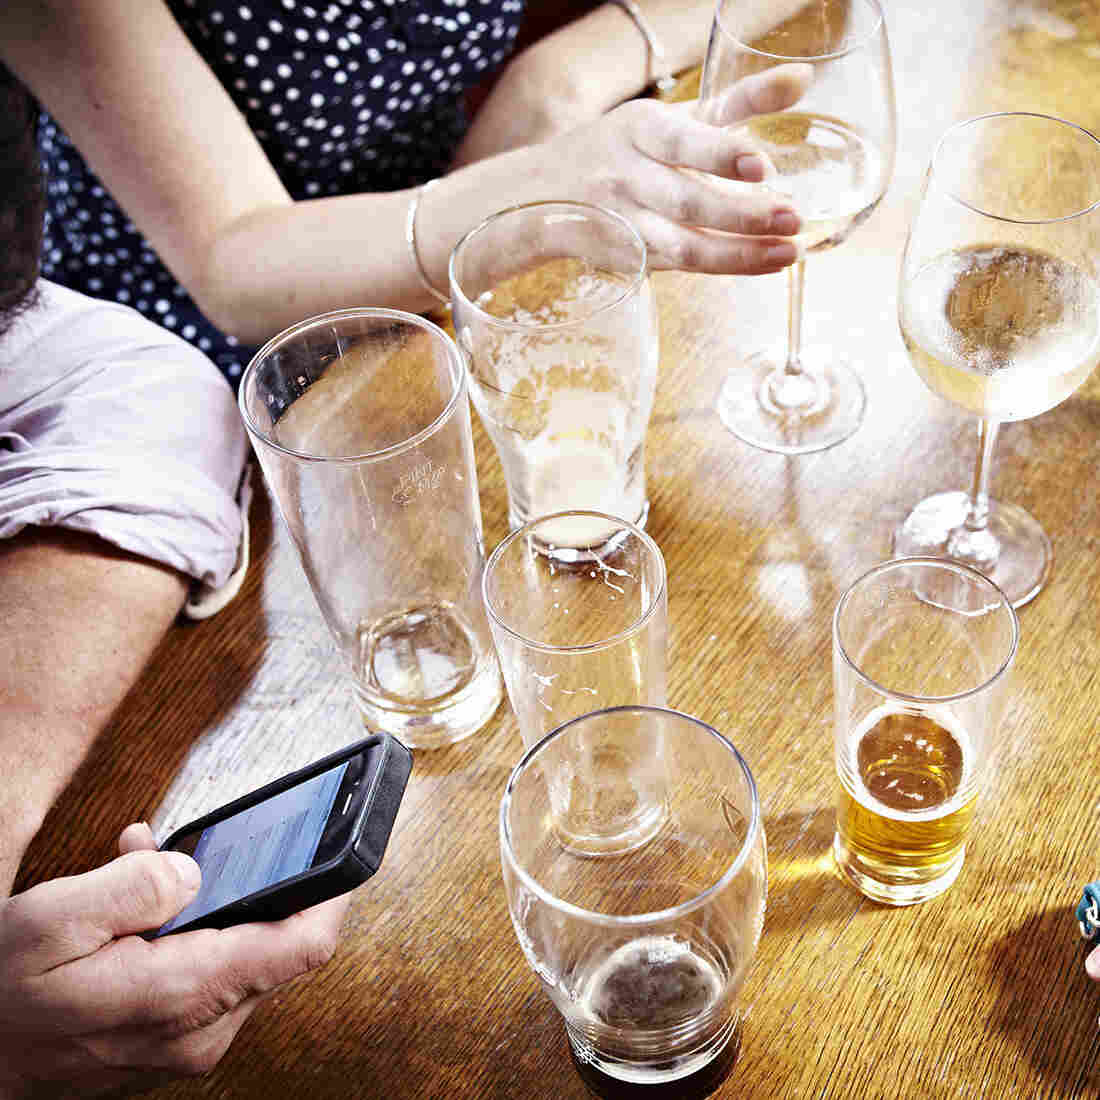 Your Drinking Habits May Be Influenced By How Much You Make